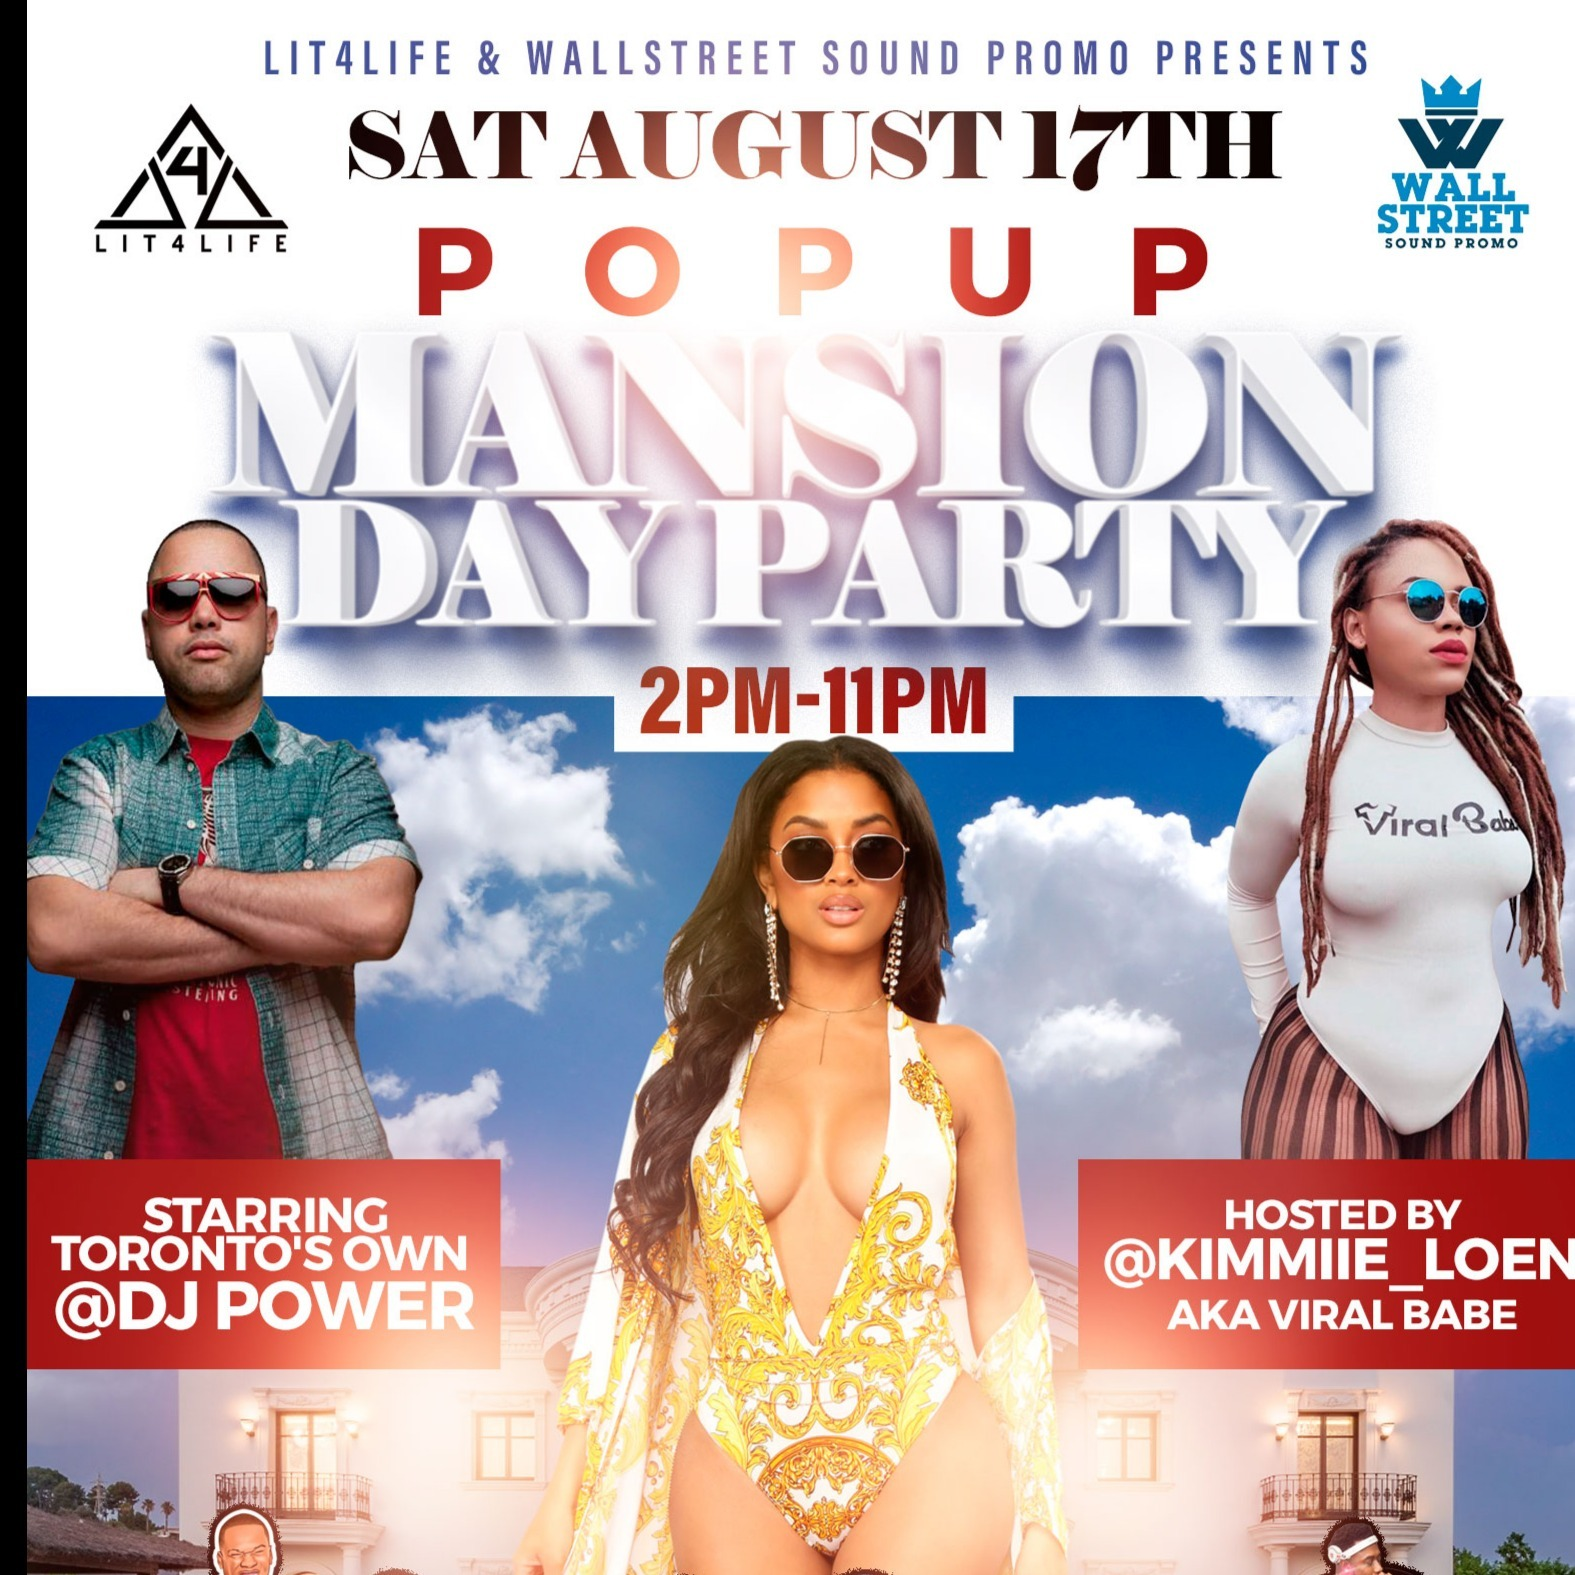 POPUP MANSION DAY PARTY